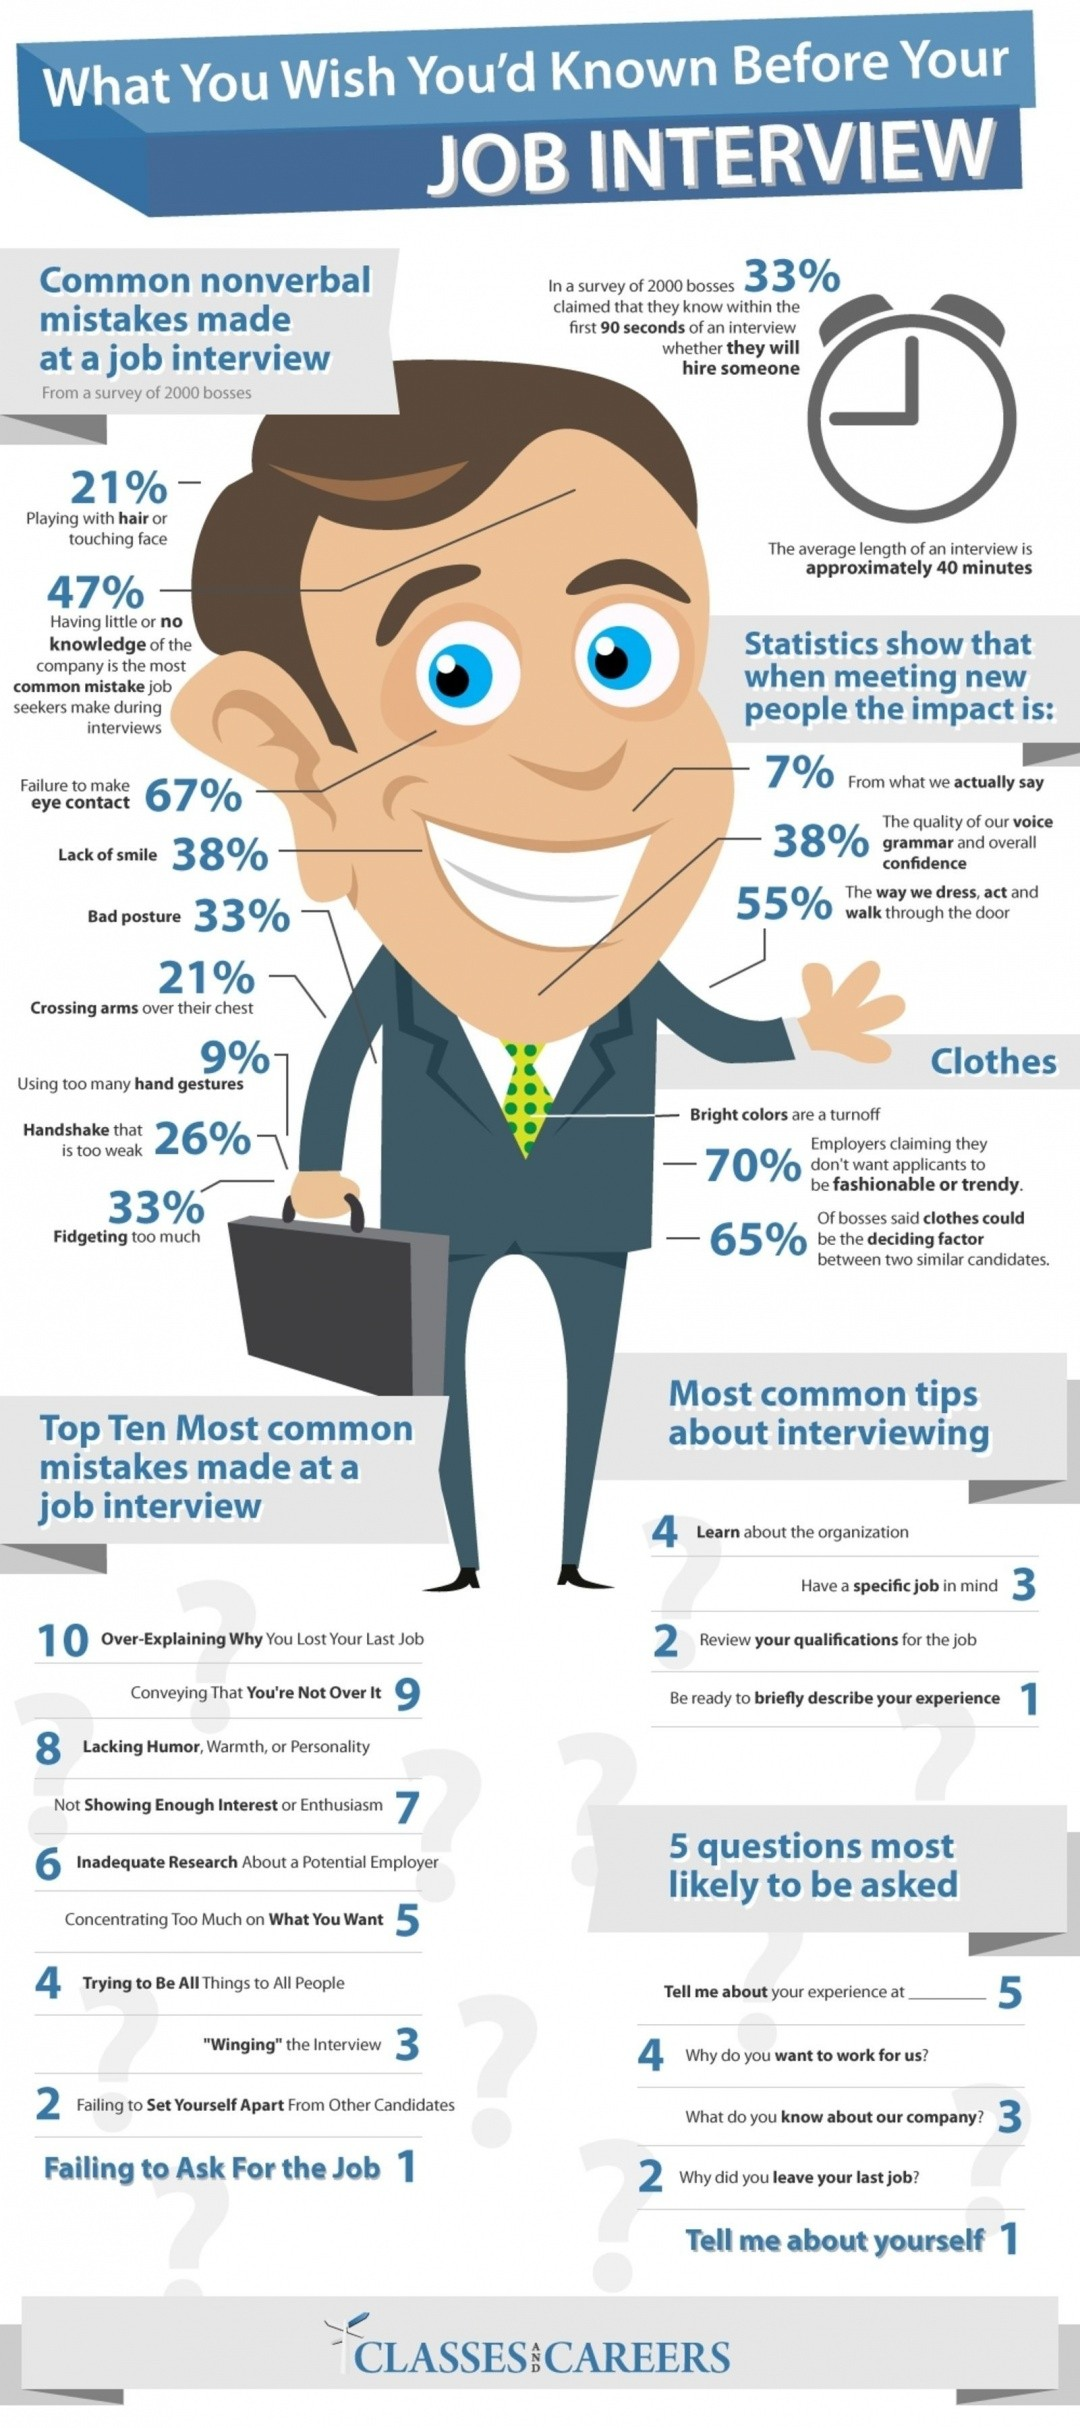 What You Wish You'd Known Before You Job Interview